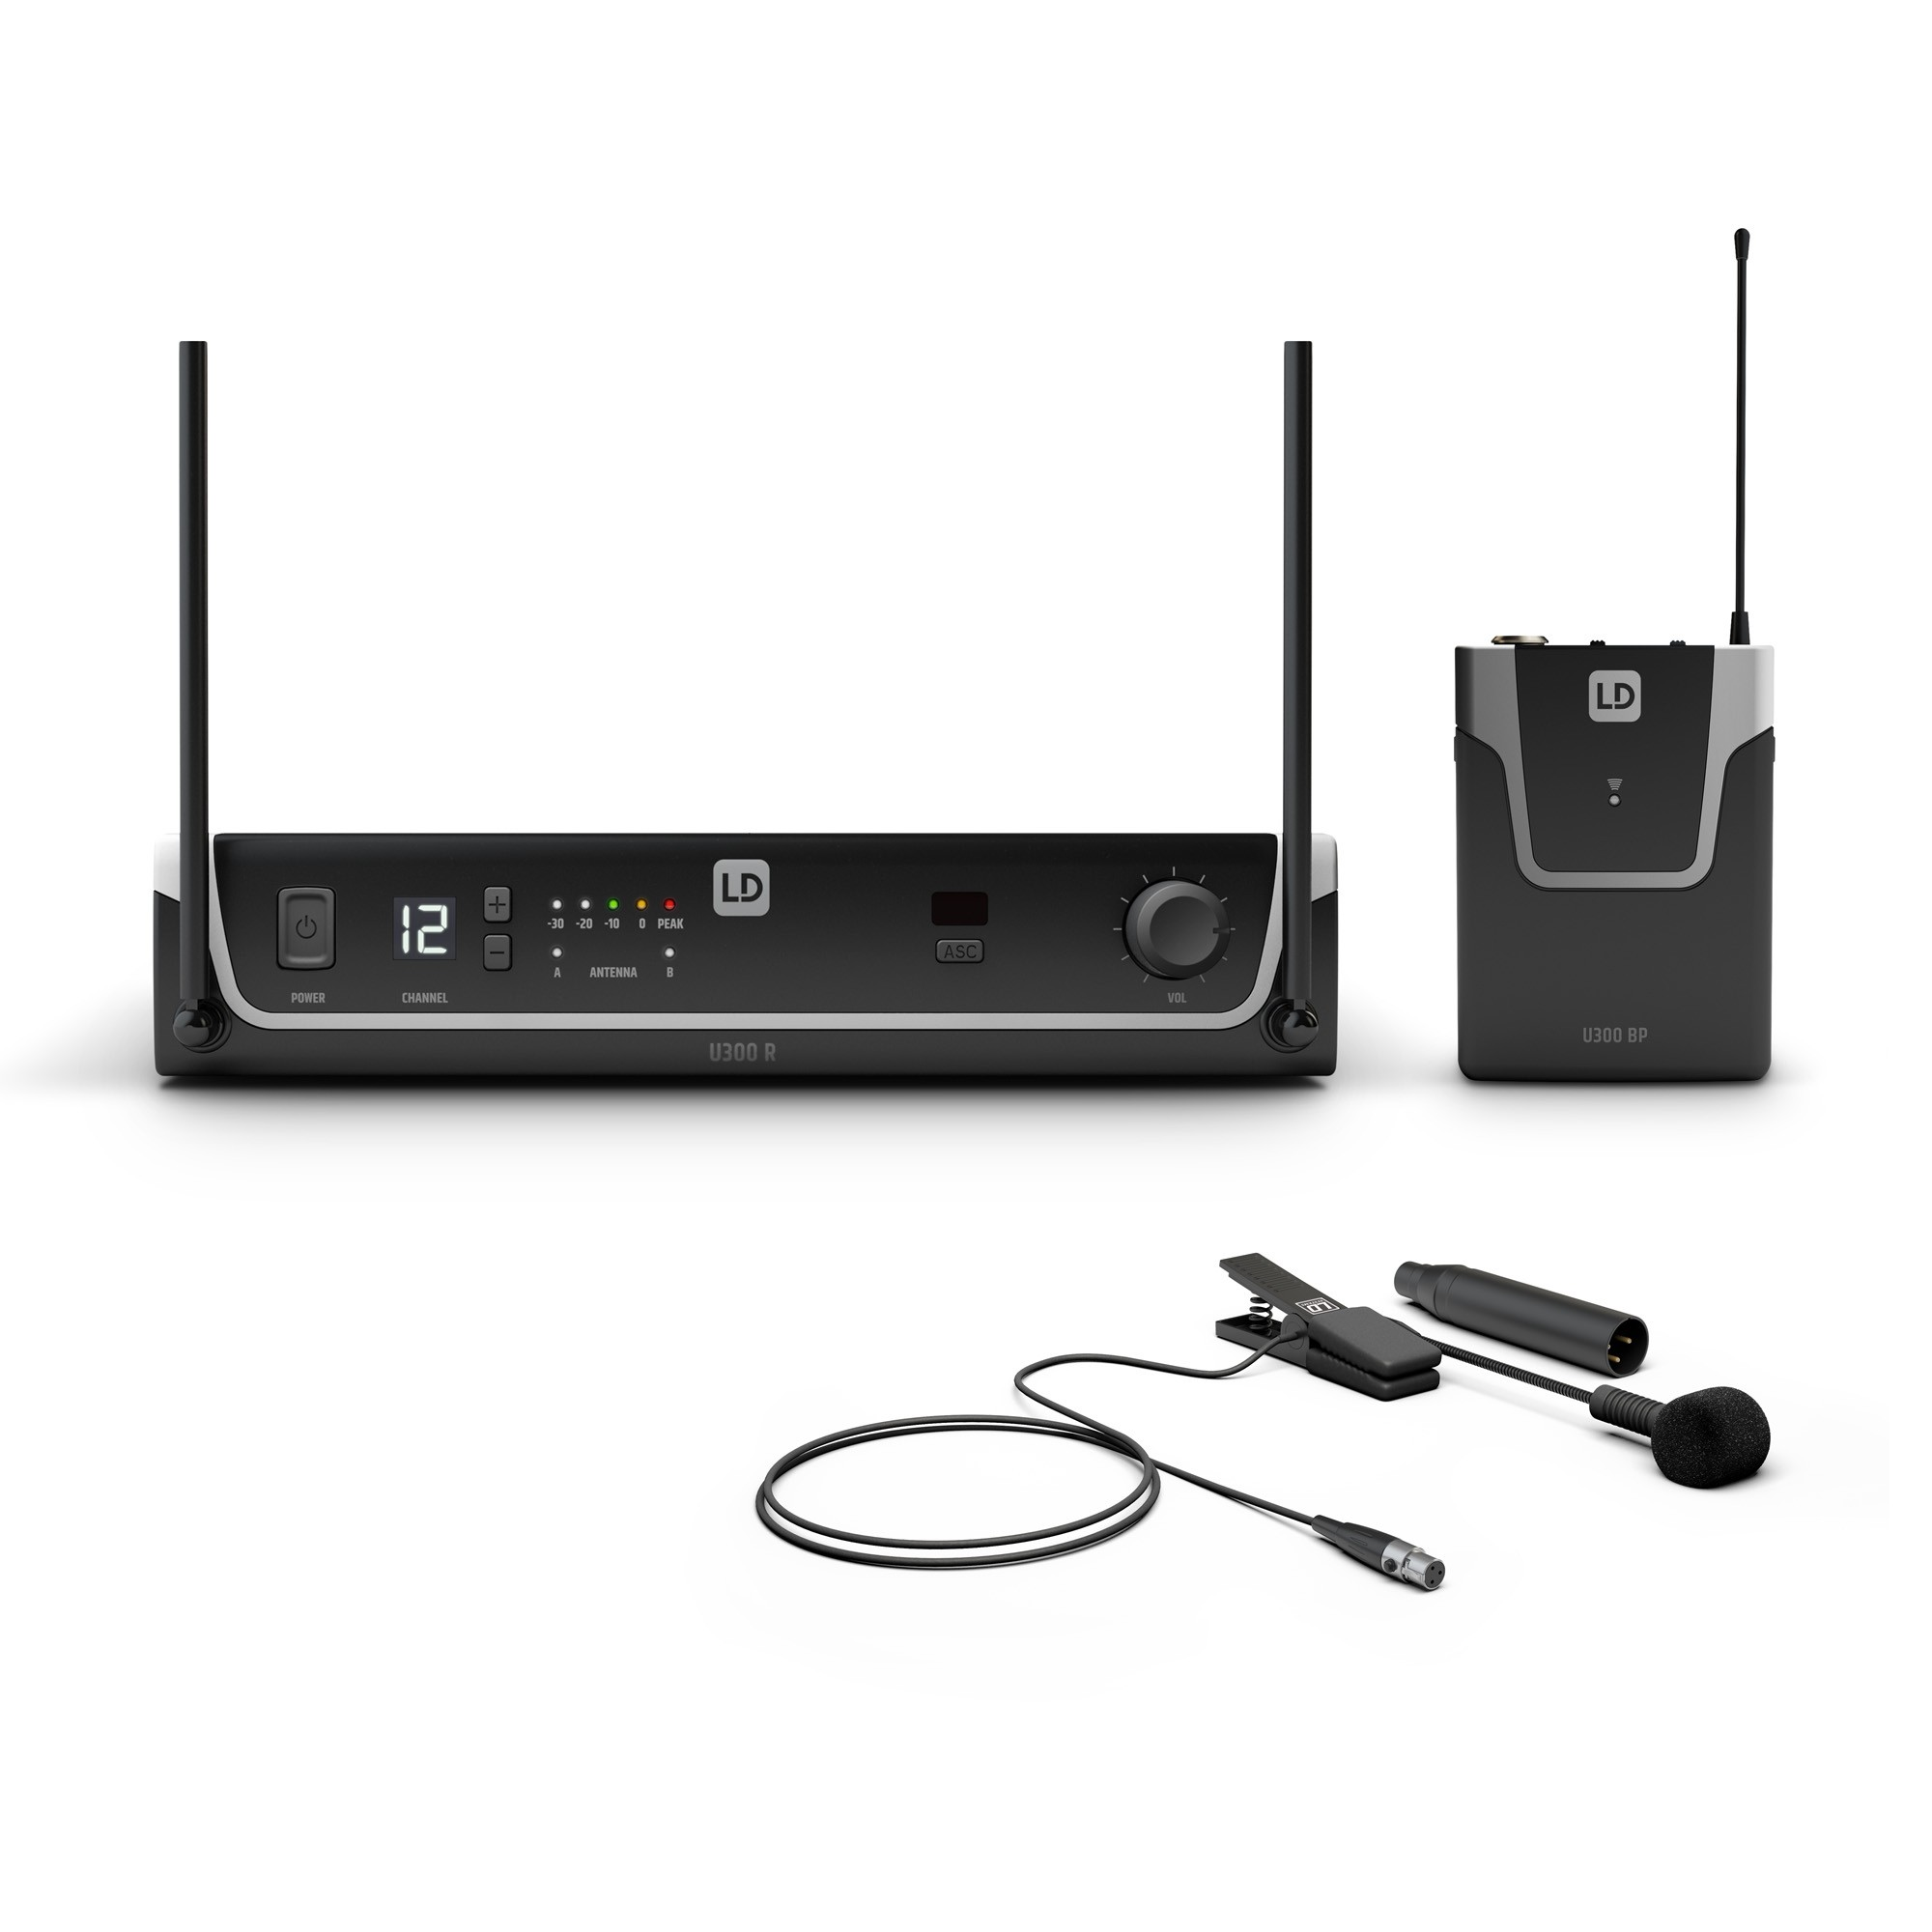 U305 BPW Wireless Microphone System with Bodypack and Brass Instrument Microphone